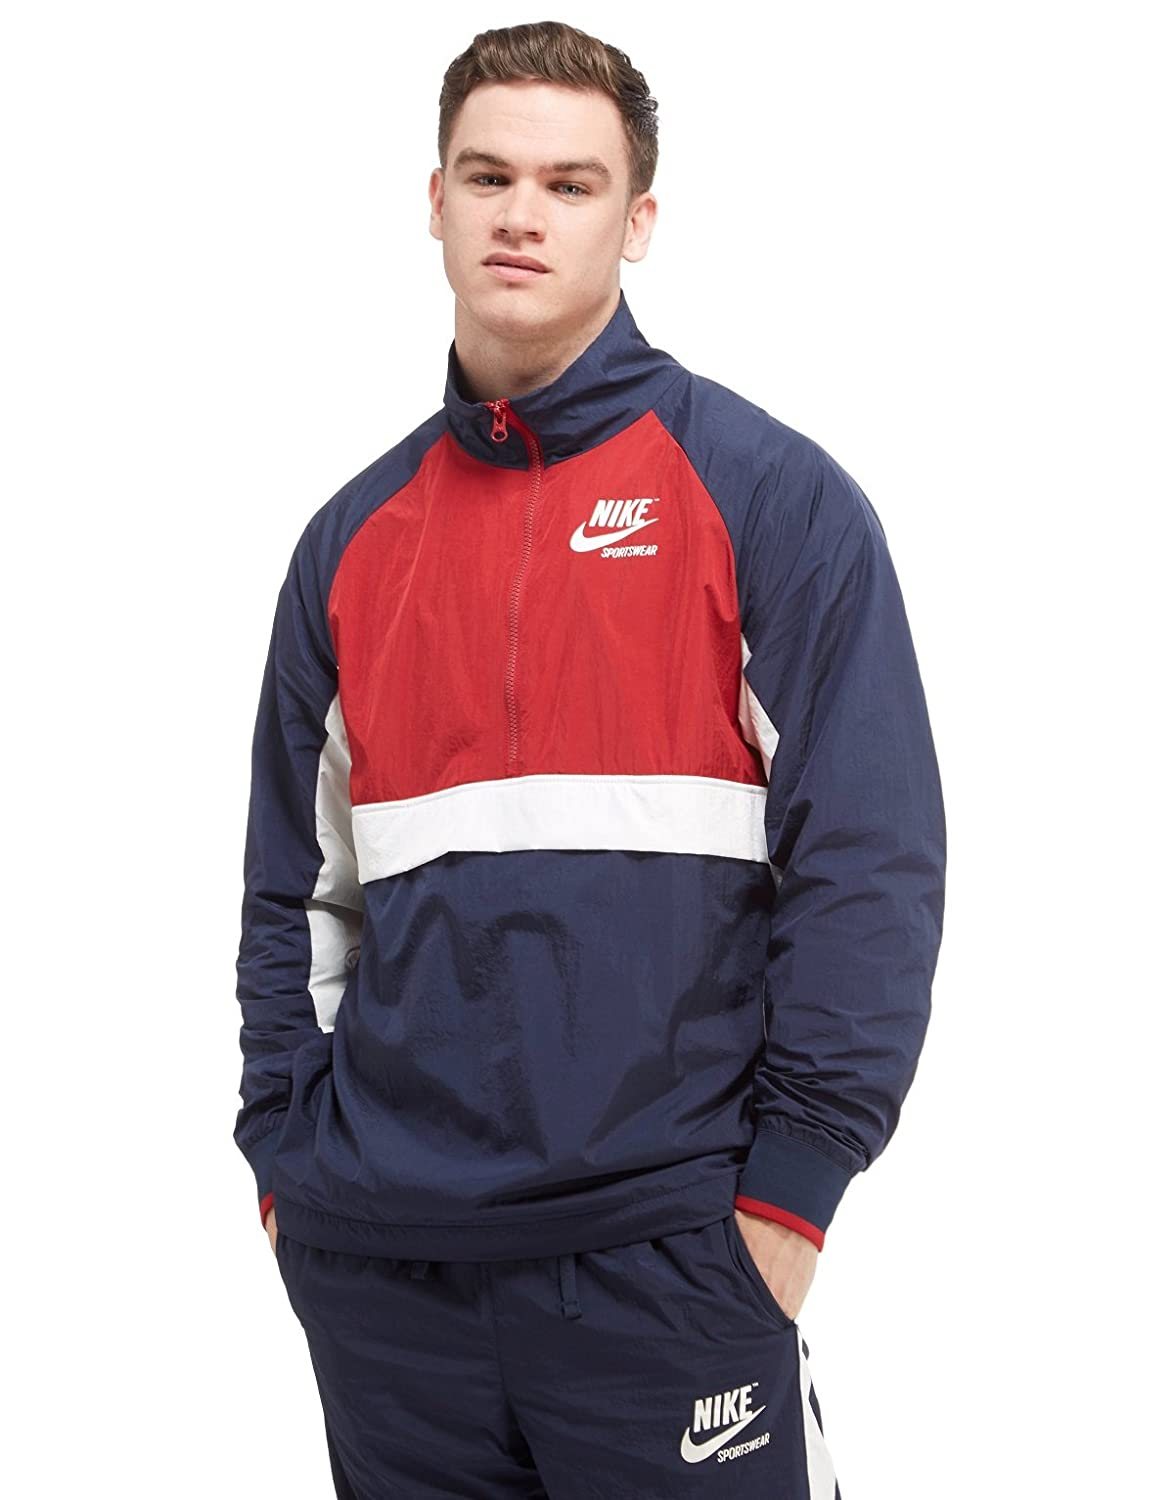 c8140e445acc Amazon.com  NIKE Men s Half Zip Woven Archive Athletic Rain Jacket Obsidian Tough  Red Sail 921743-451 (Large)  Sports   Outdoors